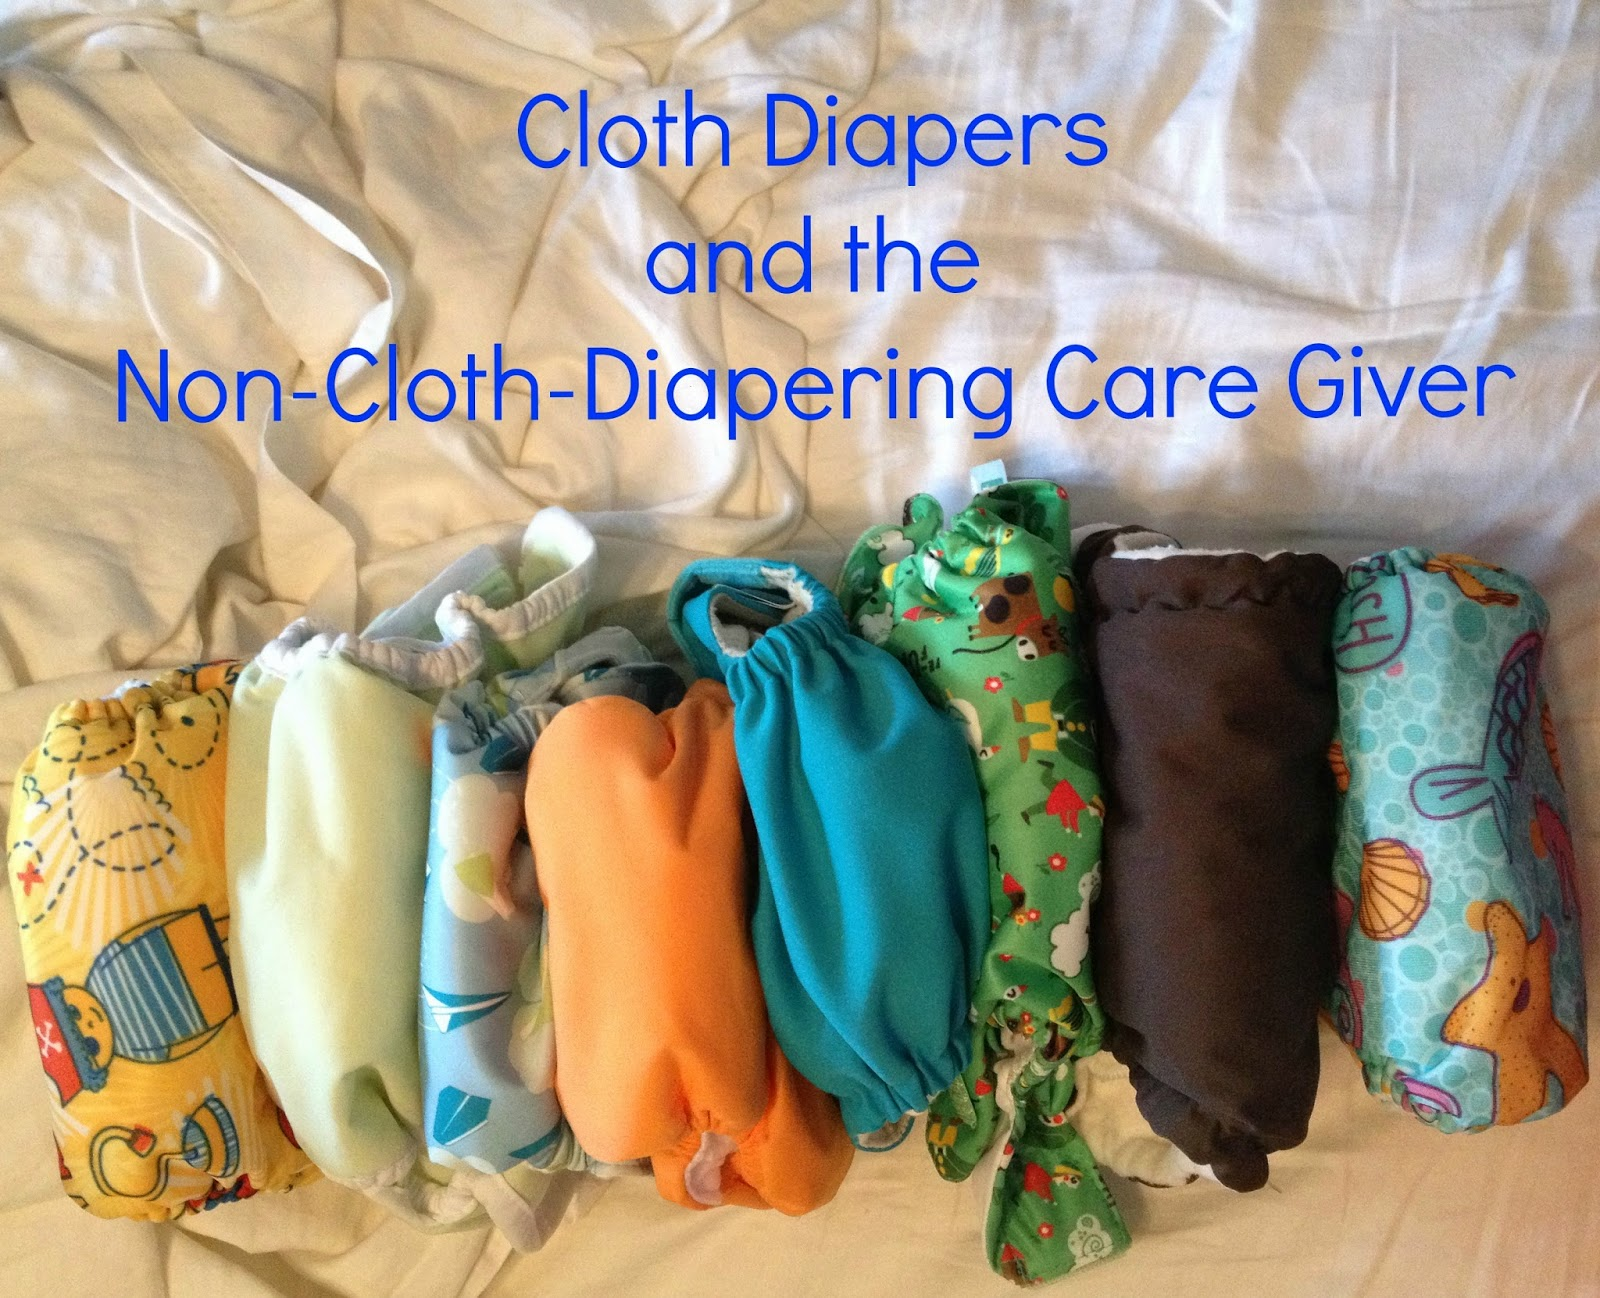 http://elemeno-pee.blogspot.com/2014/09/cloth-diapers-and-non-cloth-diapering.html